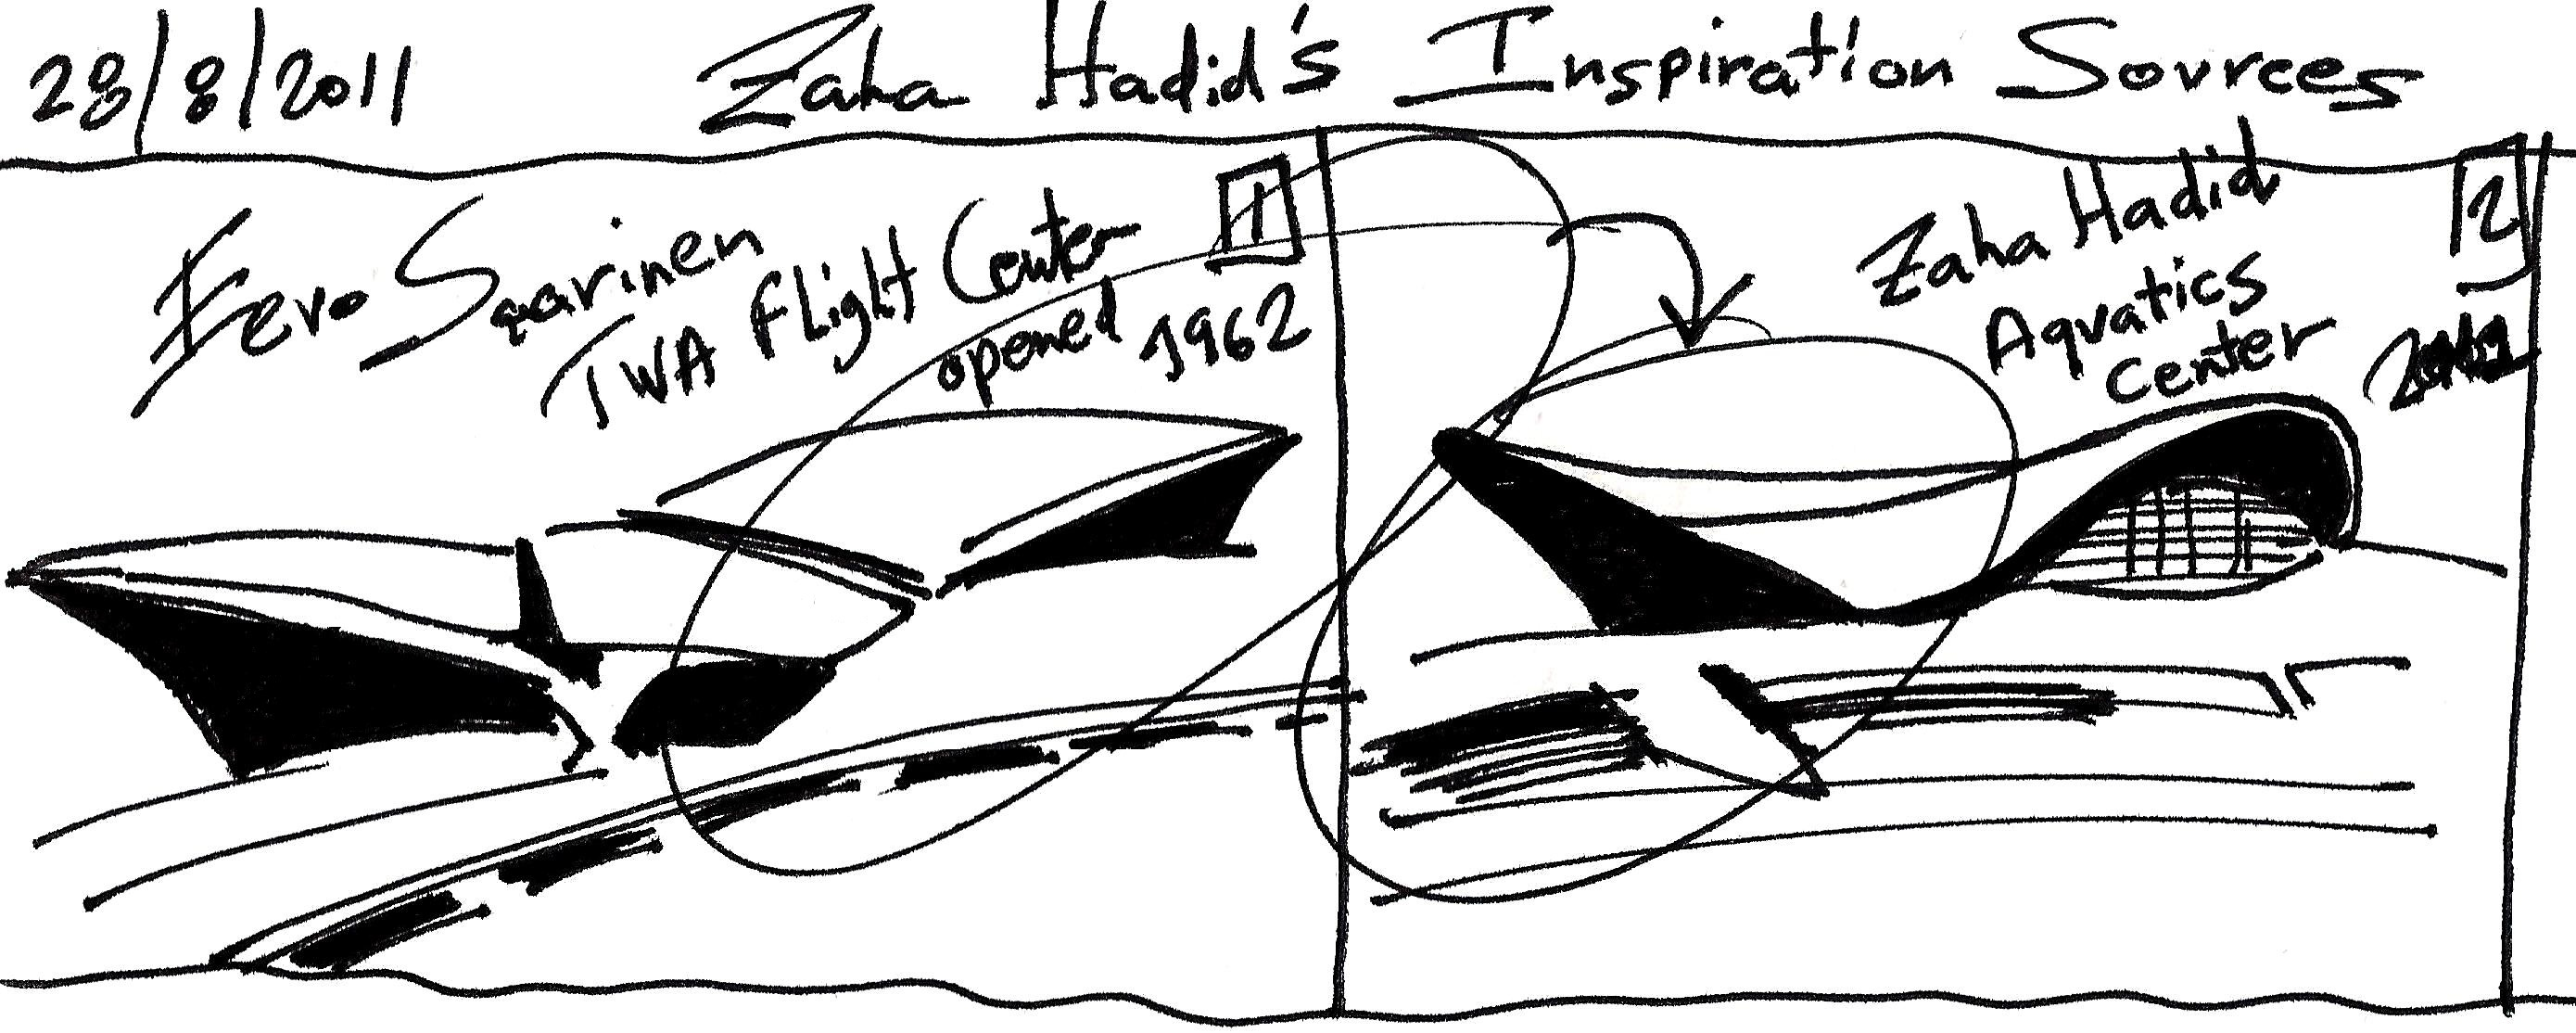 zaha hadid u2019s inspiration sources